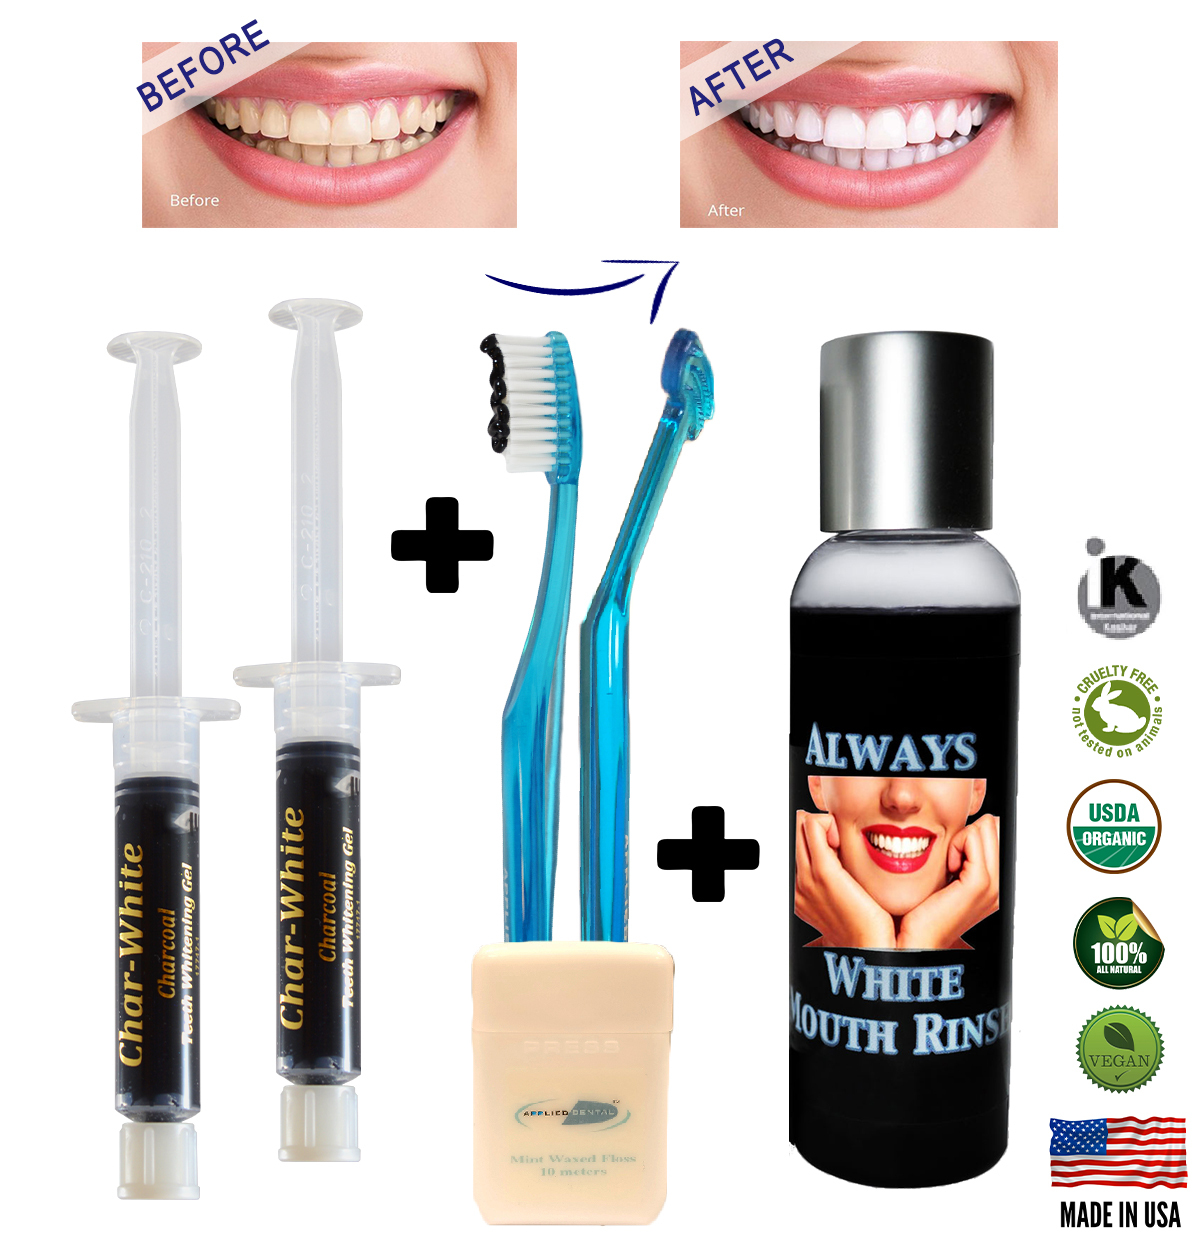 New Organic Fresh Mint Activated Charcoal Natural Teeth Whitening Gel Usa Made  - $14.45